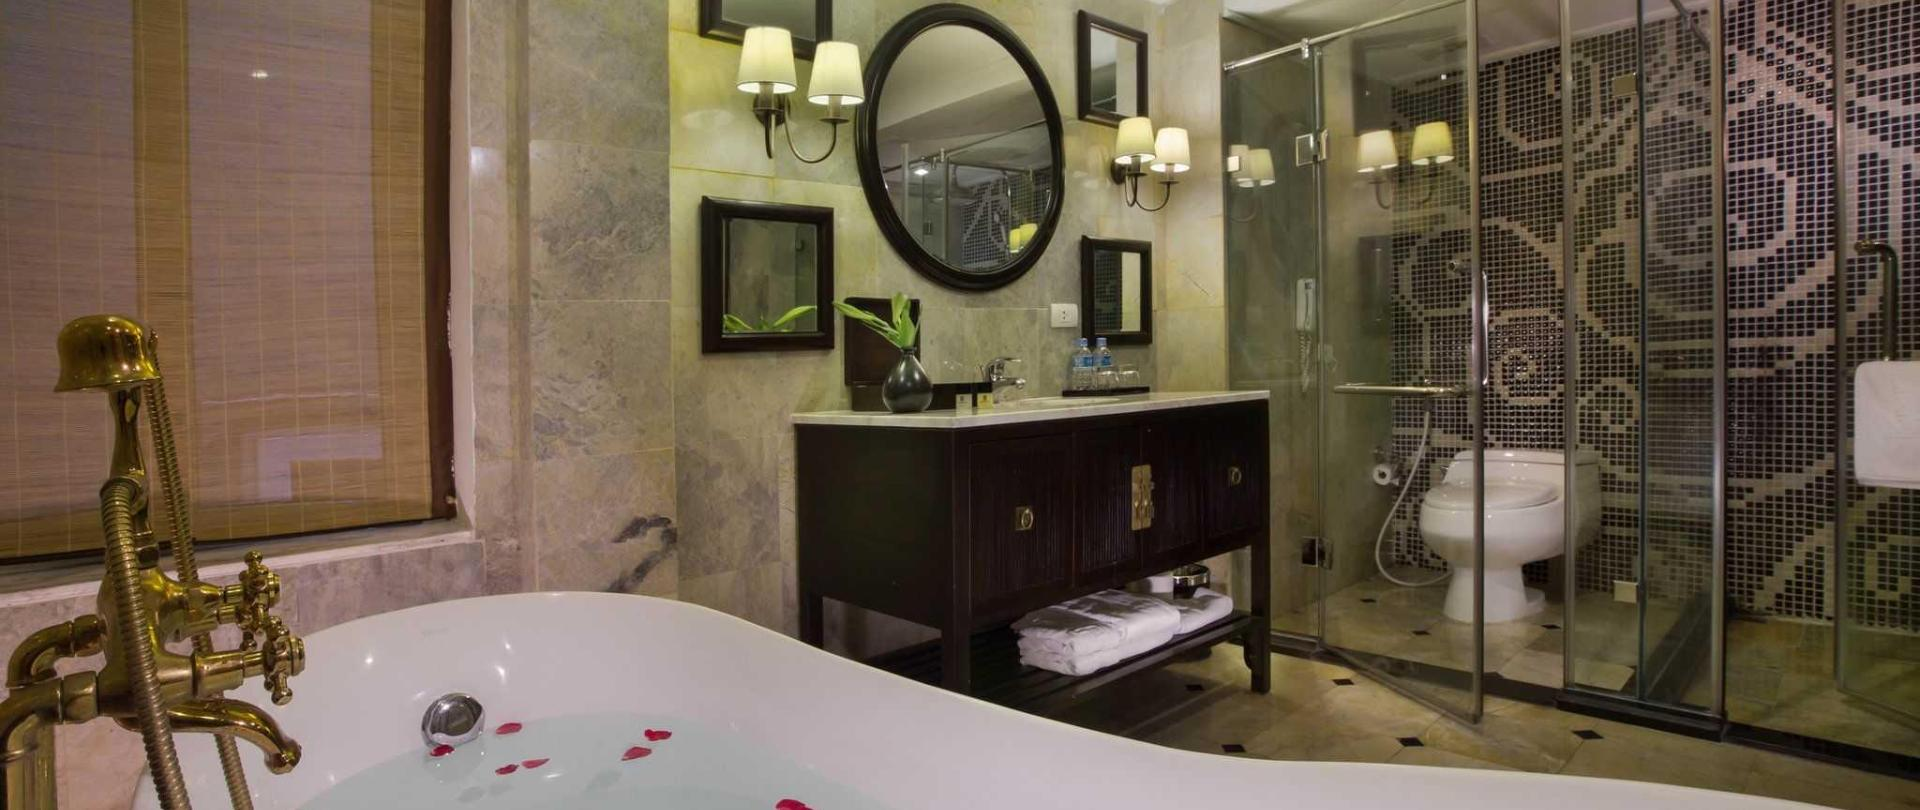 suite-bathroom.jpg